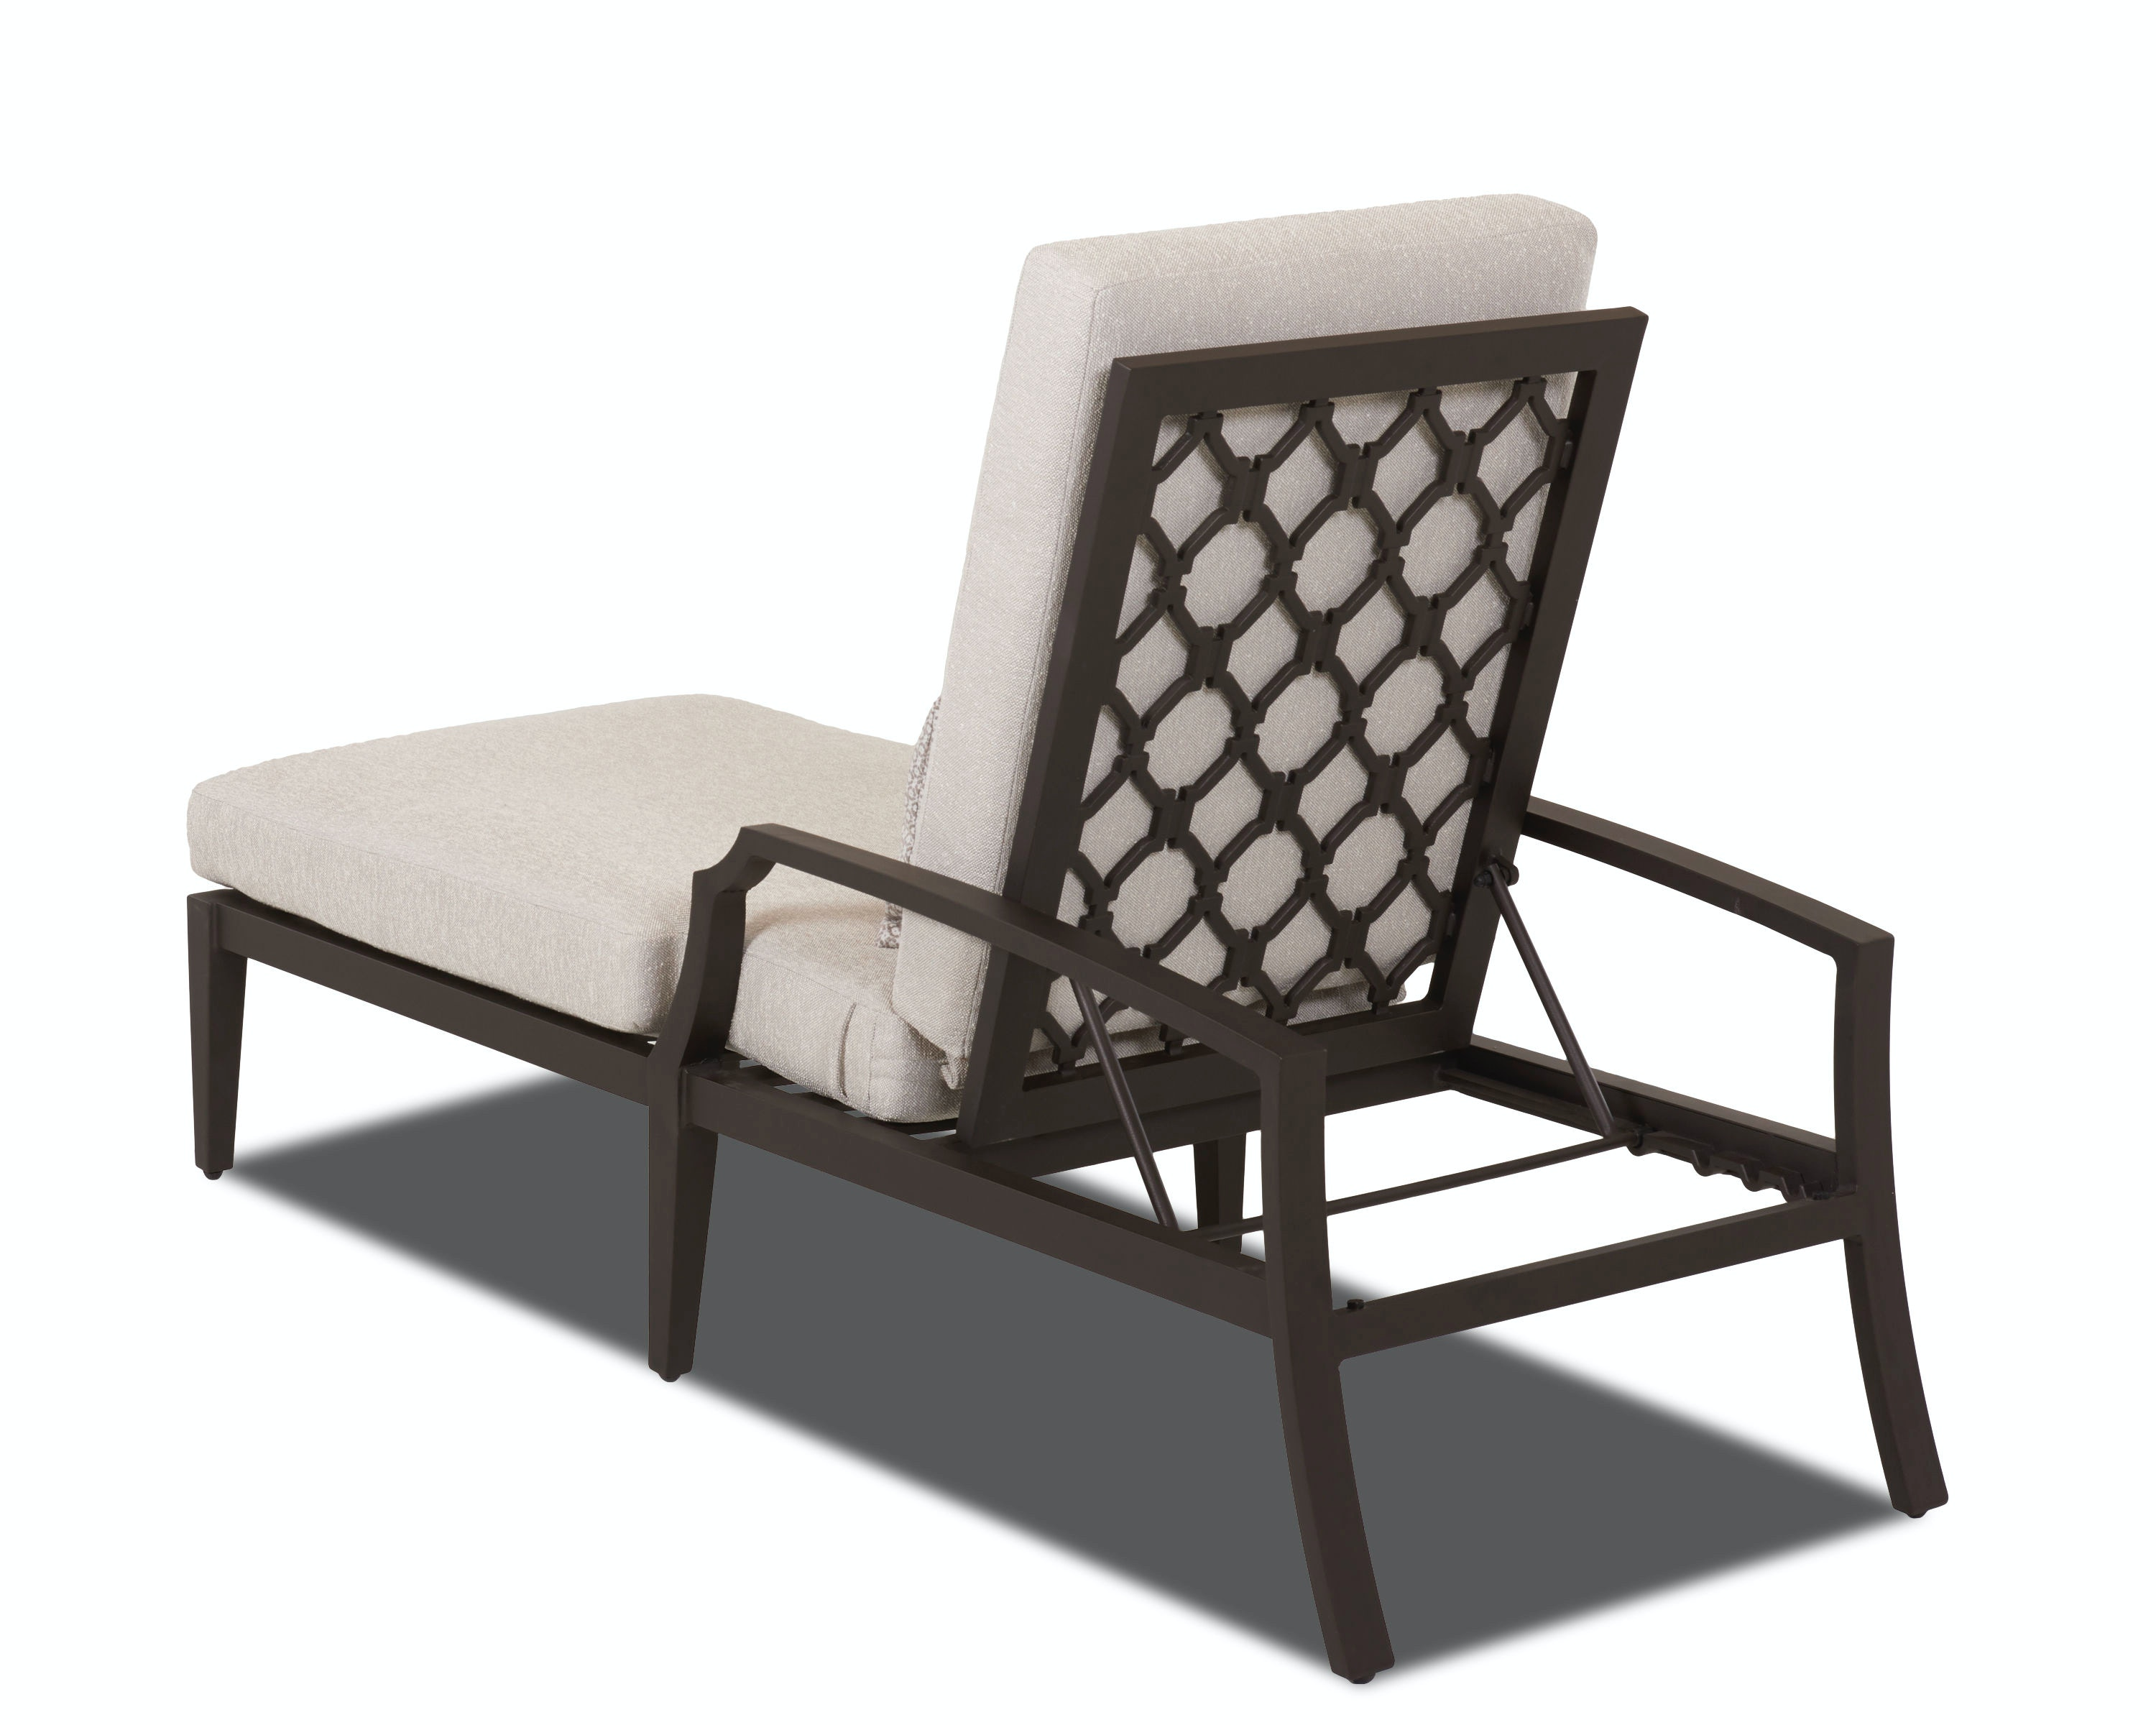 Klaussner Outdoor Outdoor Patio Mirage Chaise W2101 Chase